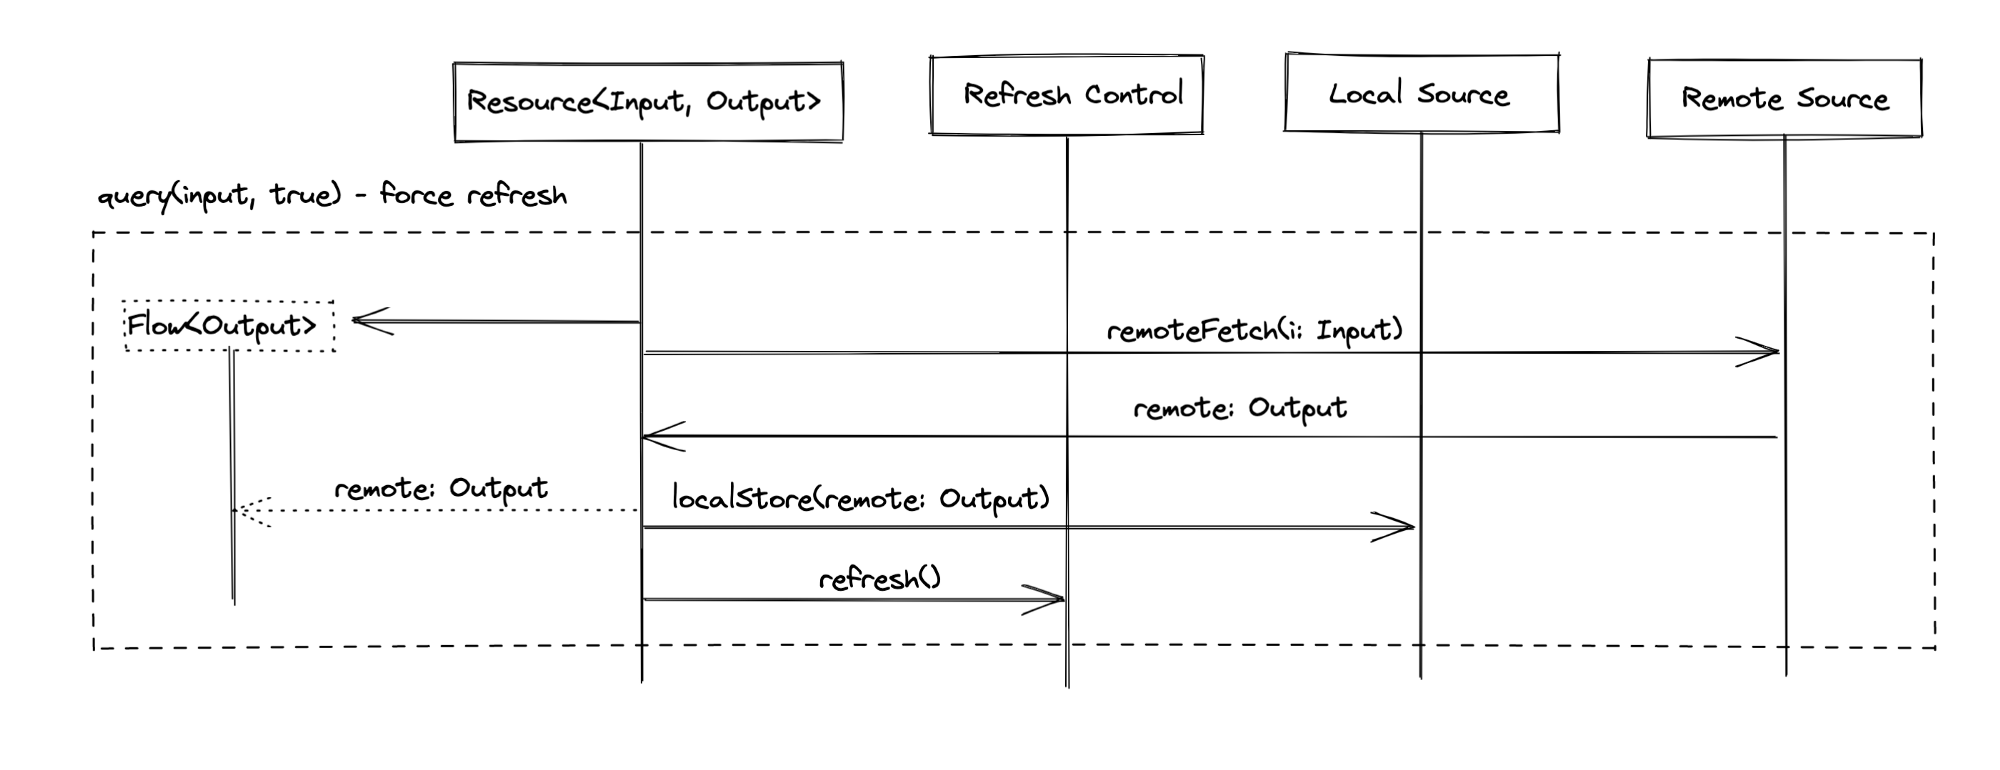 Resource—Forced refresh—Activity diagram